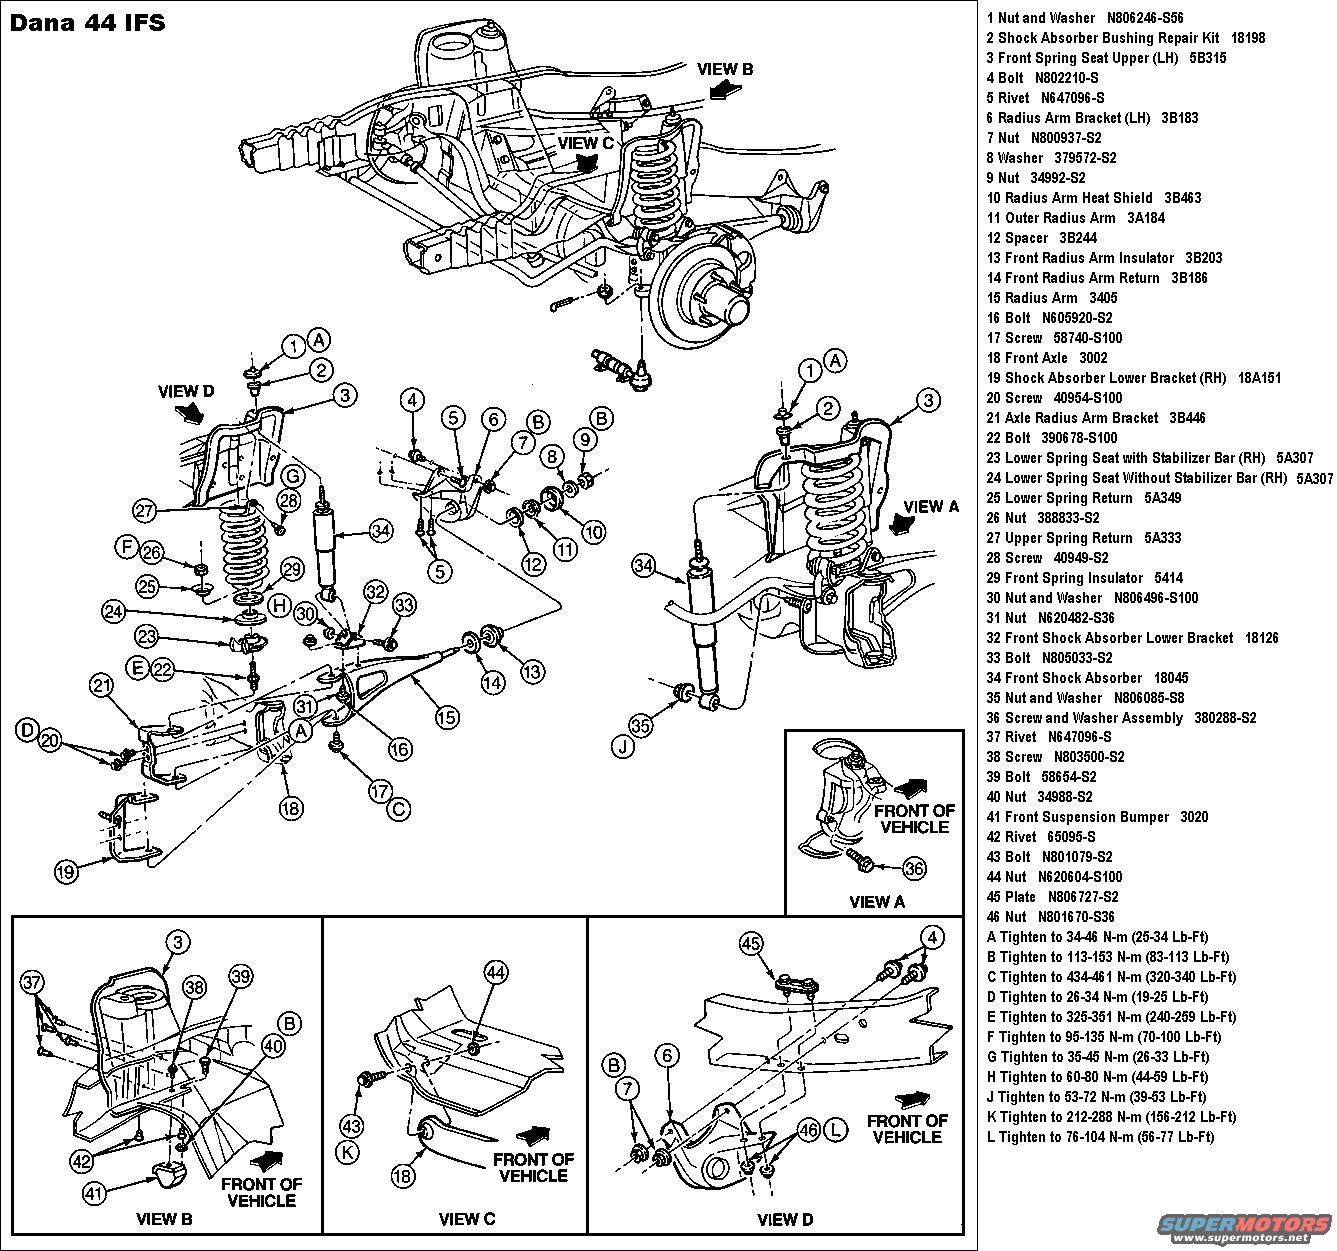 1998 ford f150 front suspension diagram e30 stereo wiring f 150 free engine image for